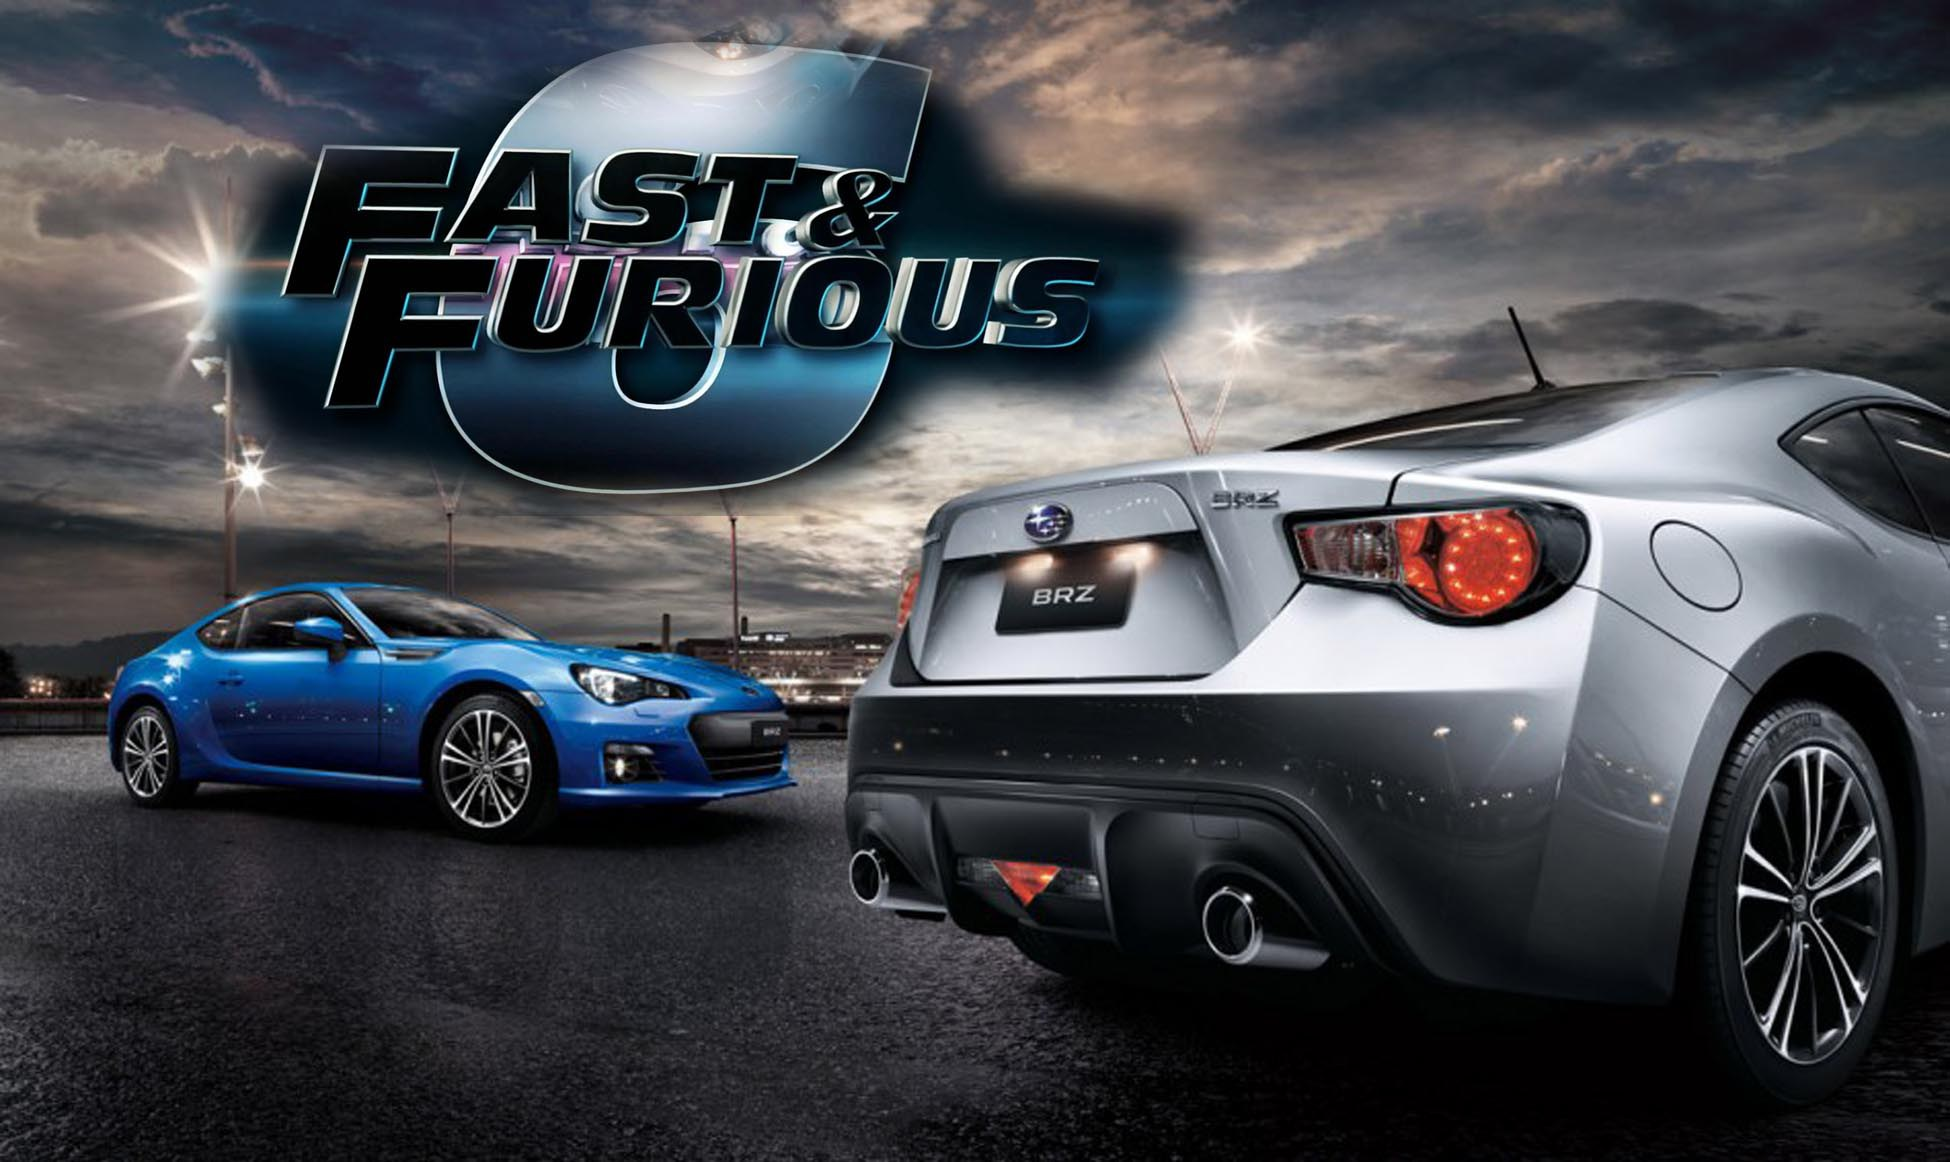 Fast and furious 7 Wallpaper download 1950x1162